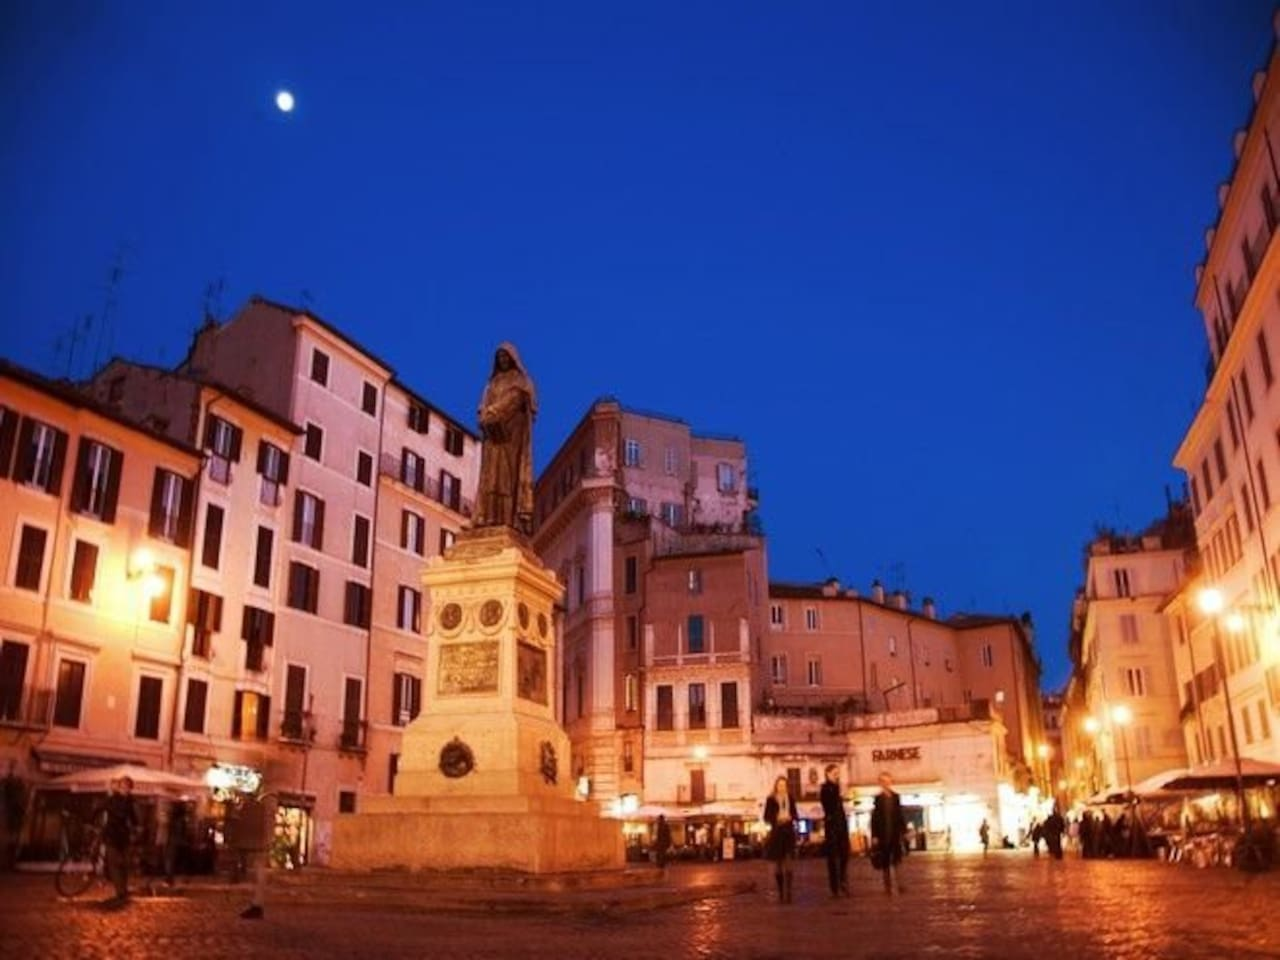 Your experience in the Square by night